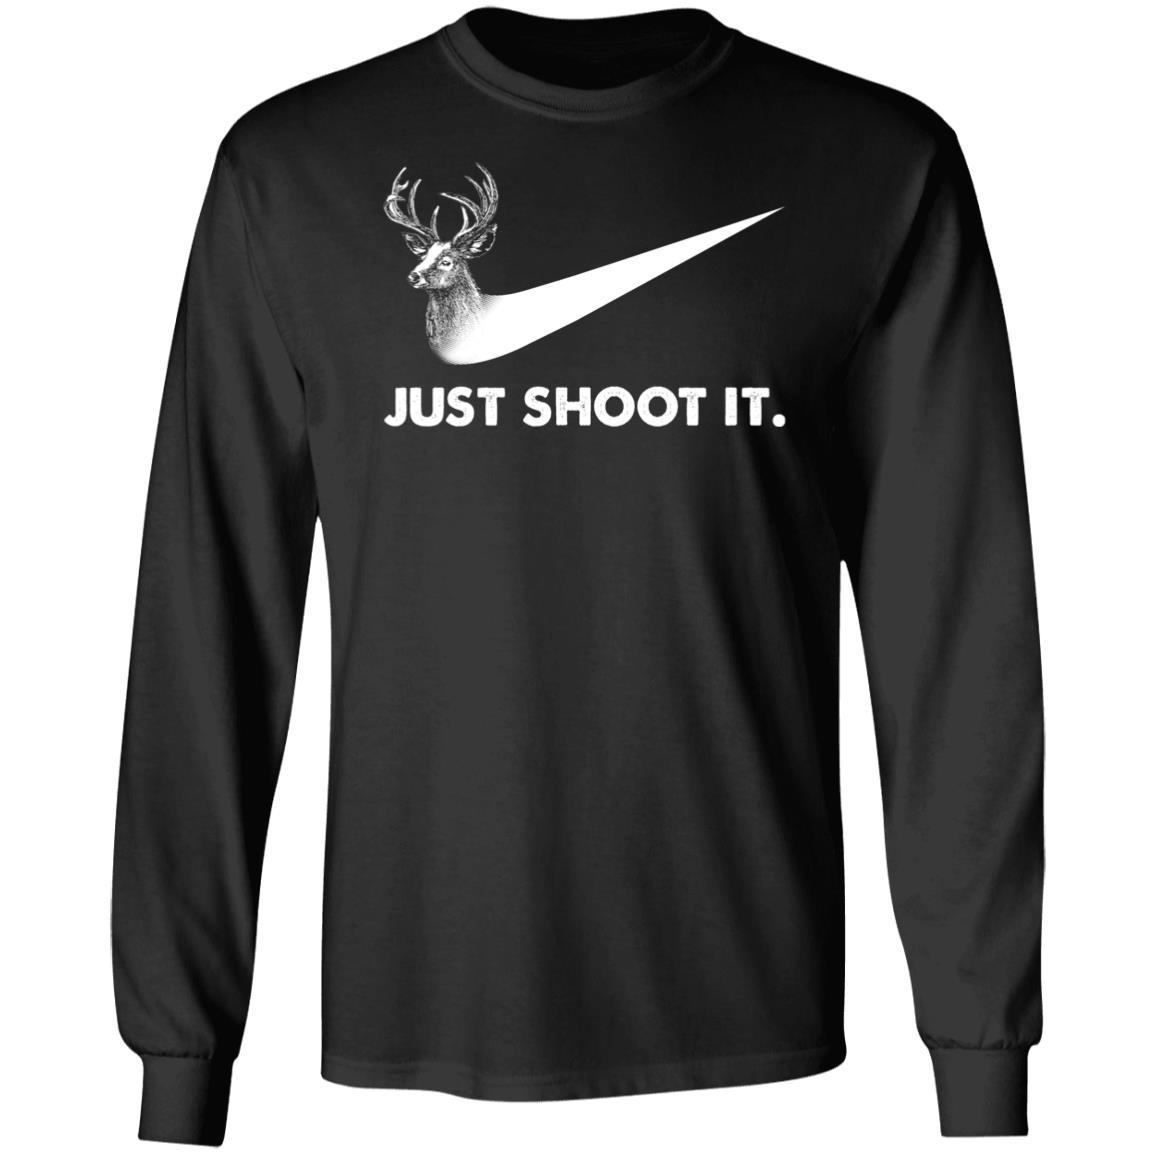 T-Shirts - Just Shoot It Unisex LS T-Shirt